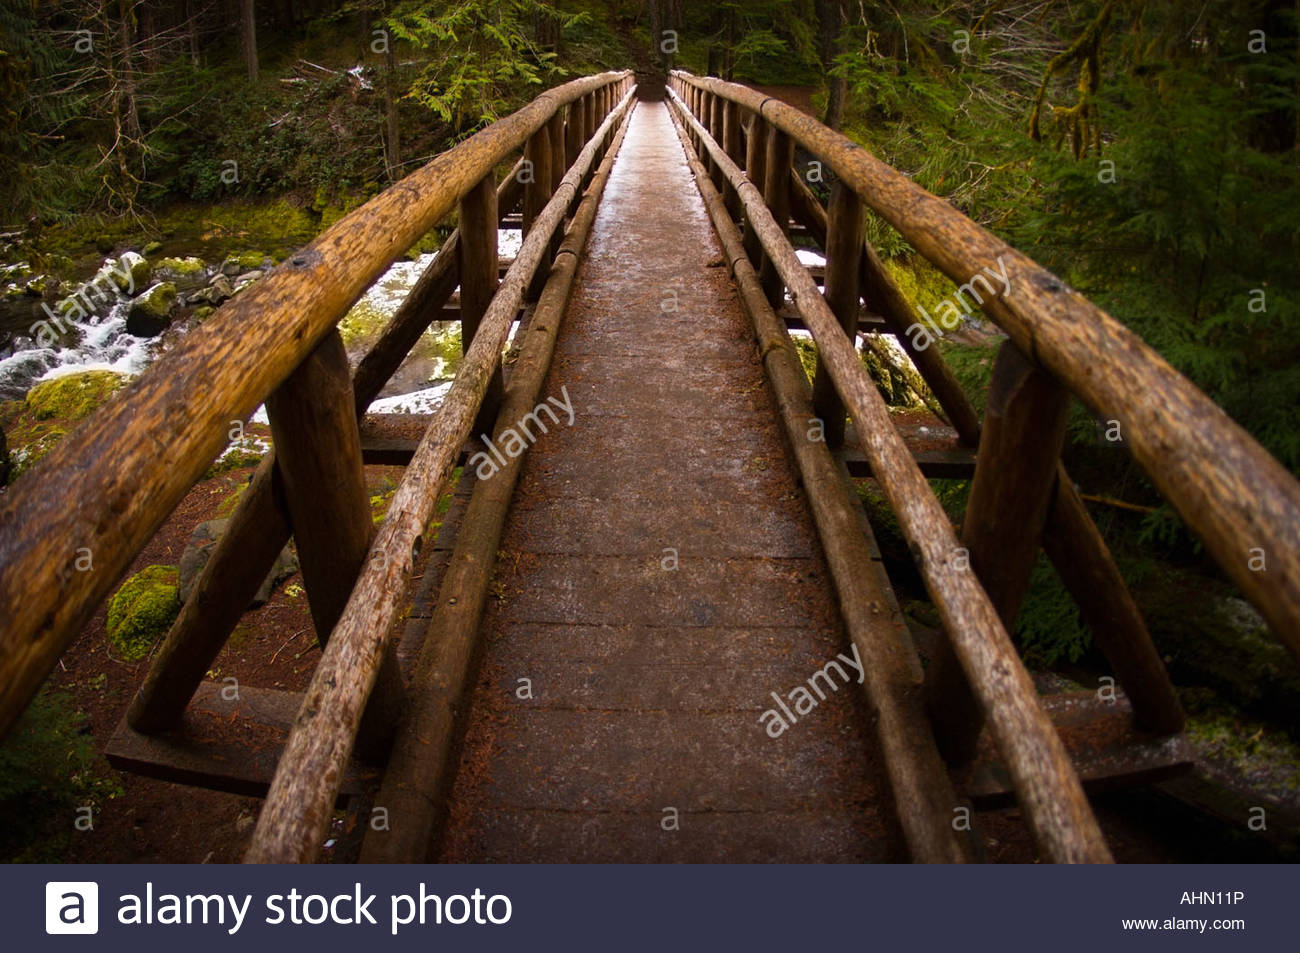 Bridge spanning forest river - Stock Image